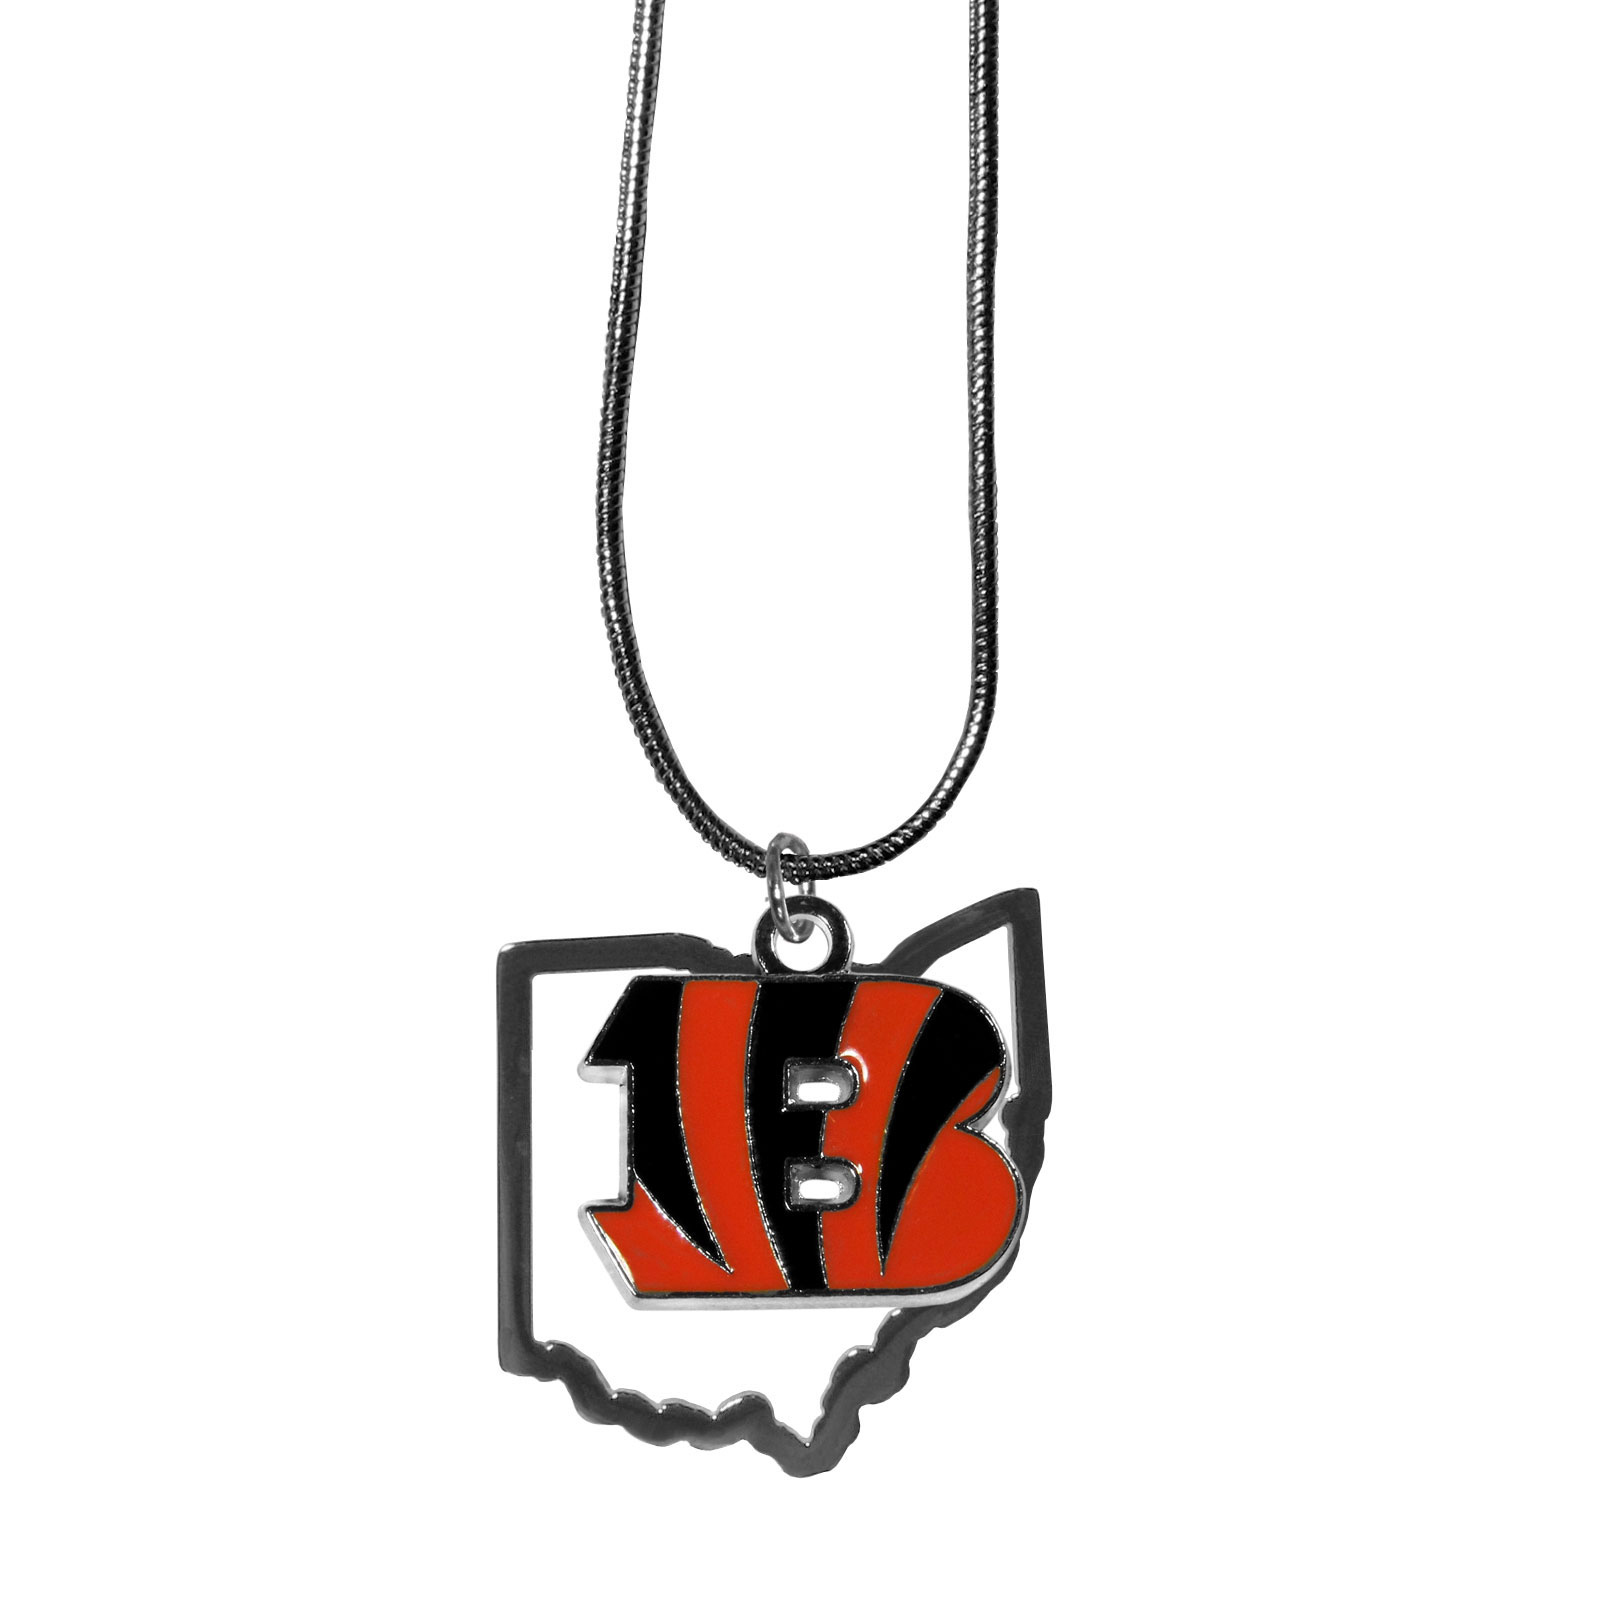 Cincinnati Bengals State Charm Necklace - Get in on the trend! State themes are a trend that just keeps getting more popular and these necklaces take the state style and give it a sporty twist with a Cincinnati Bengals added to the state outline charm. The come on a snake chain that is 22 inches long.